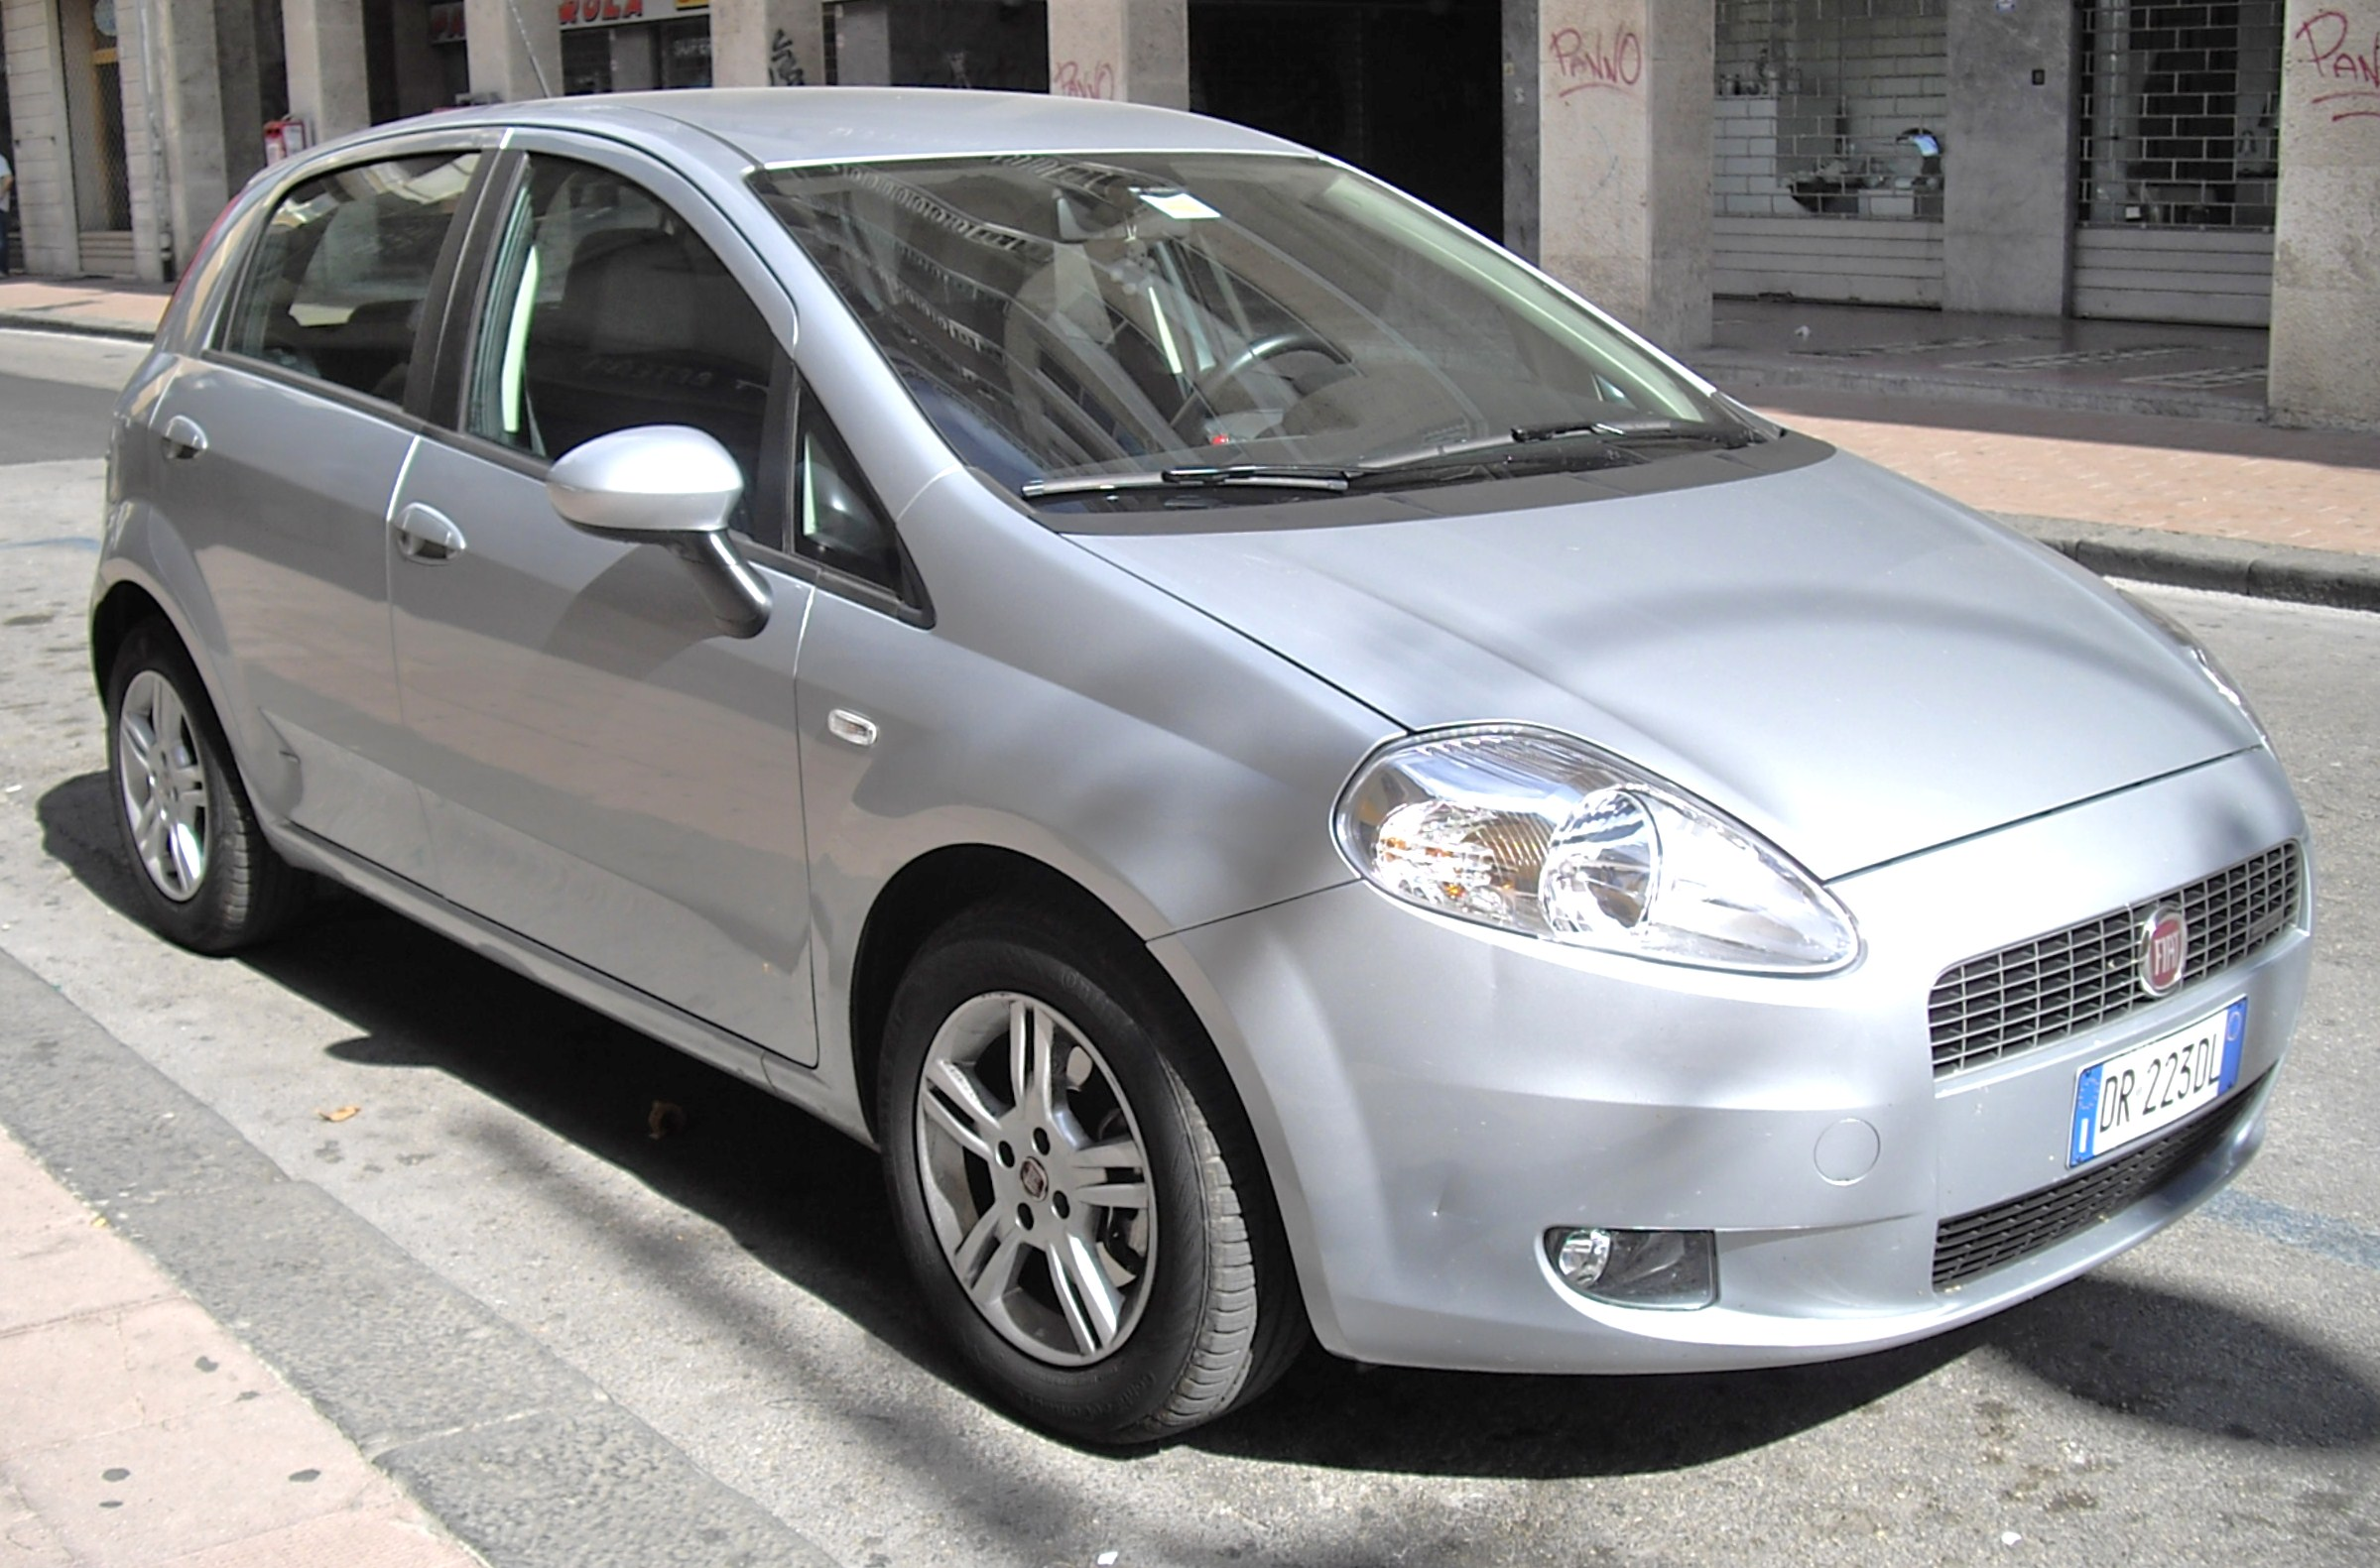 fiat grande punto pictures posters news and videos on your pursuit hobbies interests and. Black Bedroom Furniture Sets. Home Design Ideas